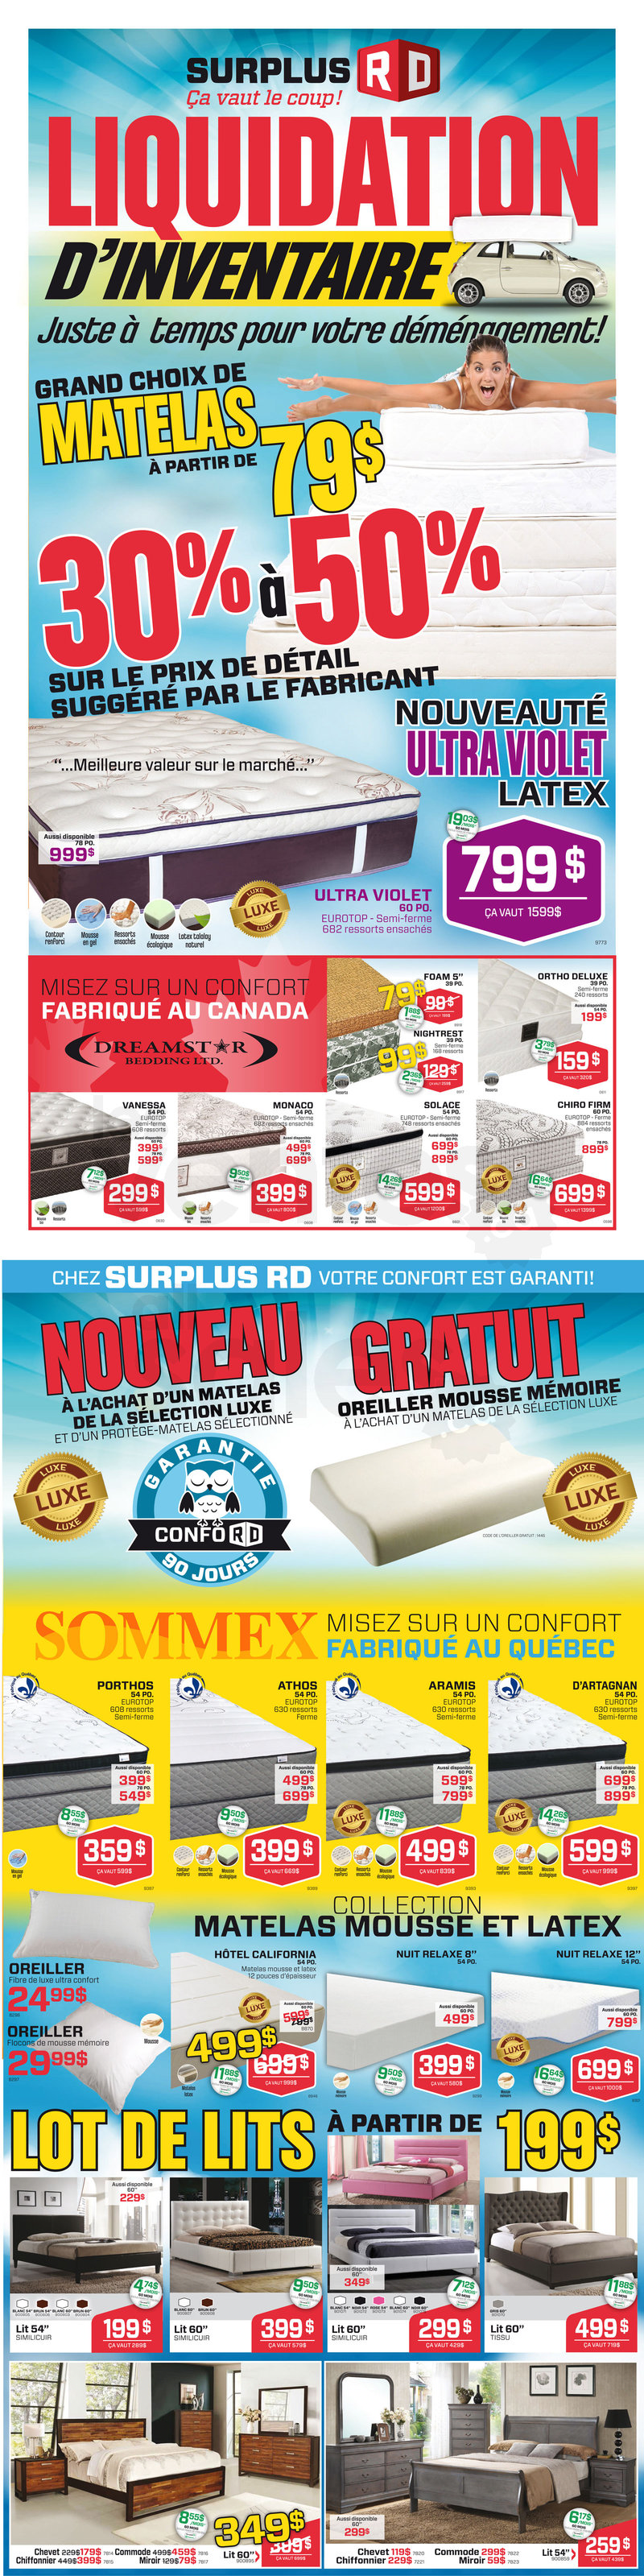 Surplus rd liquidation de matelas for Matelas en liquidation